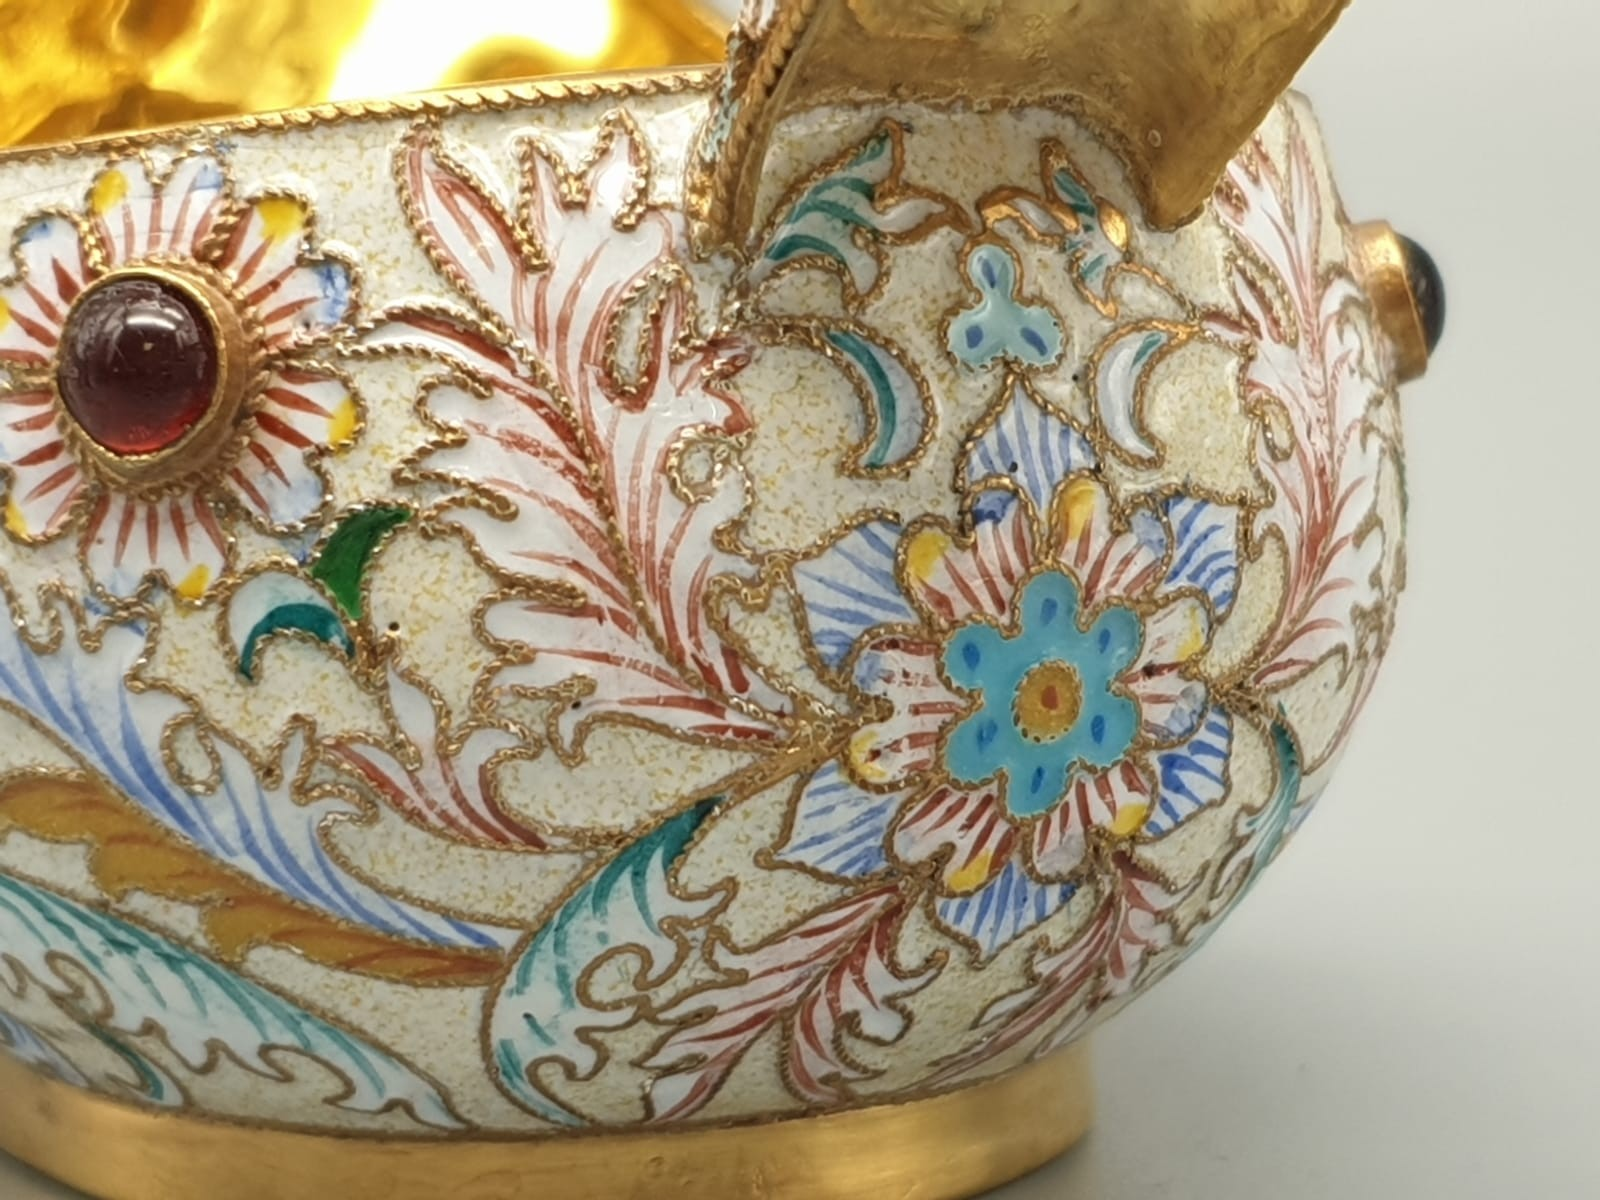 Pair of Russian 20th century silver enamel gemset kavosch bowl in the form of birds, an exquisite - Image 29 of 29